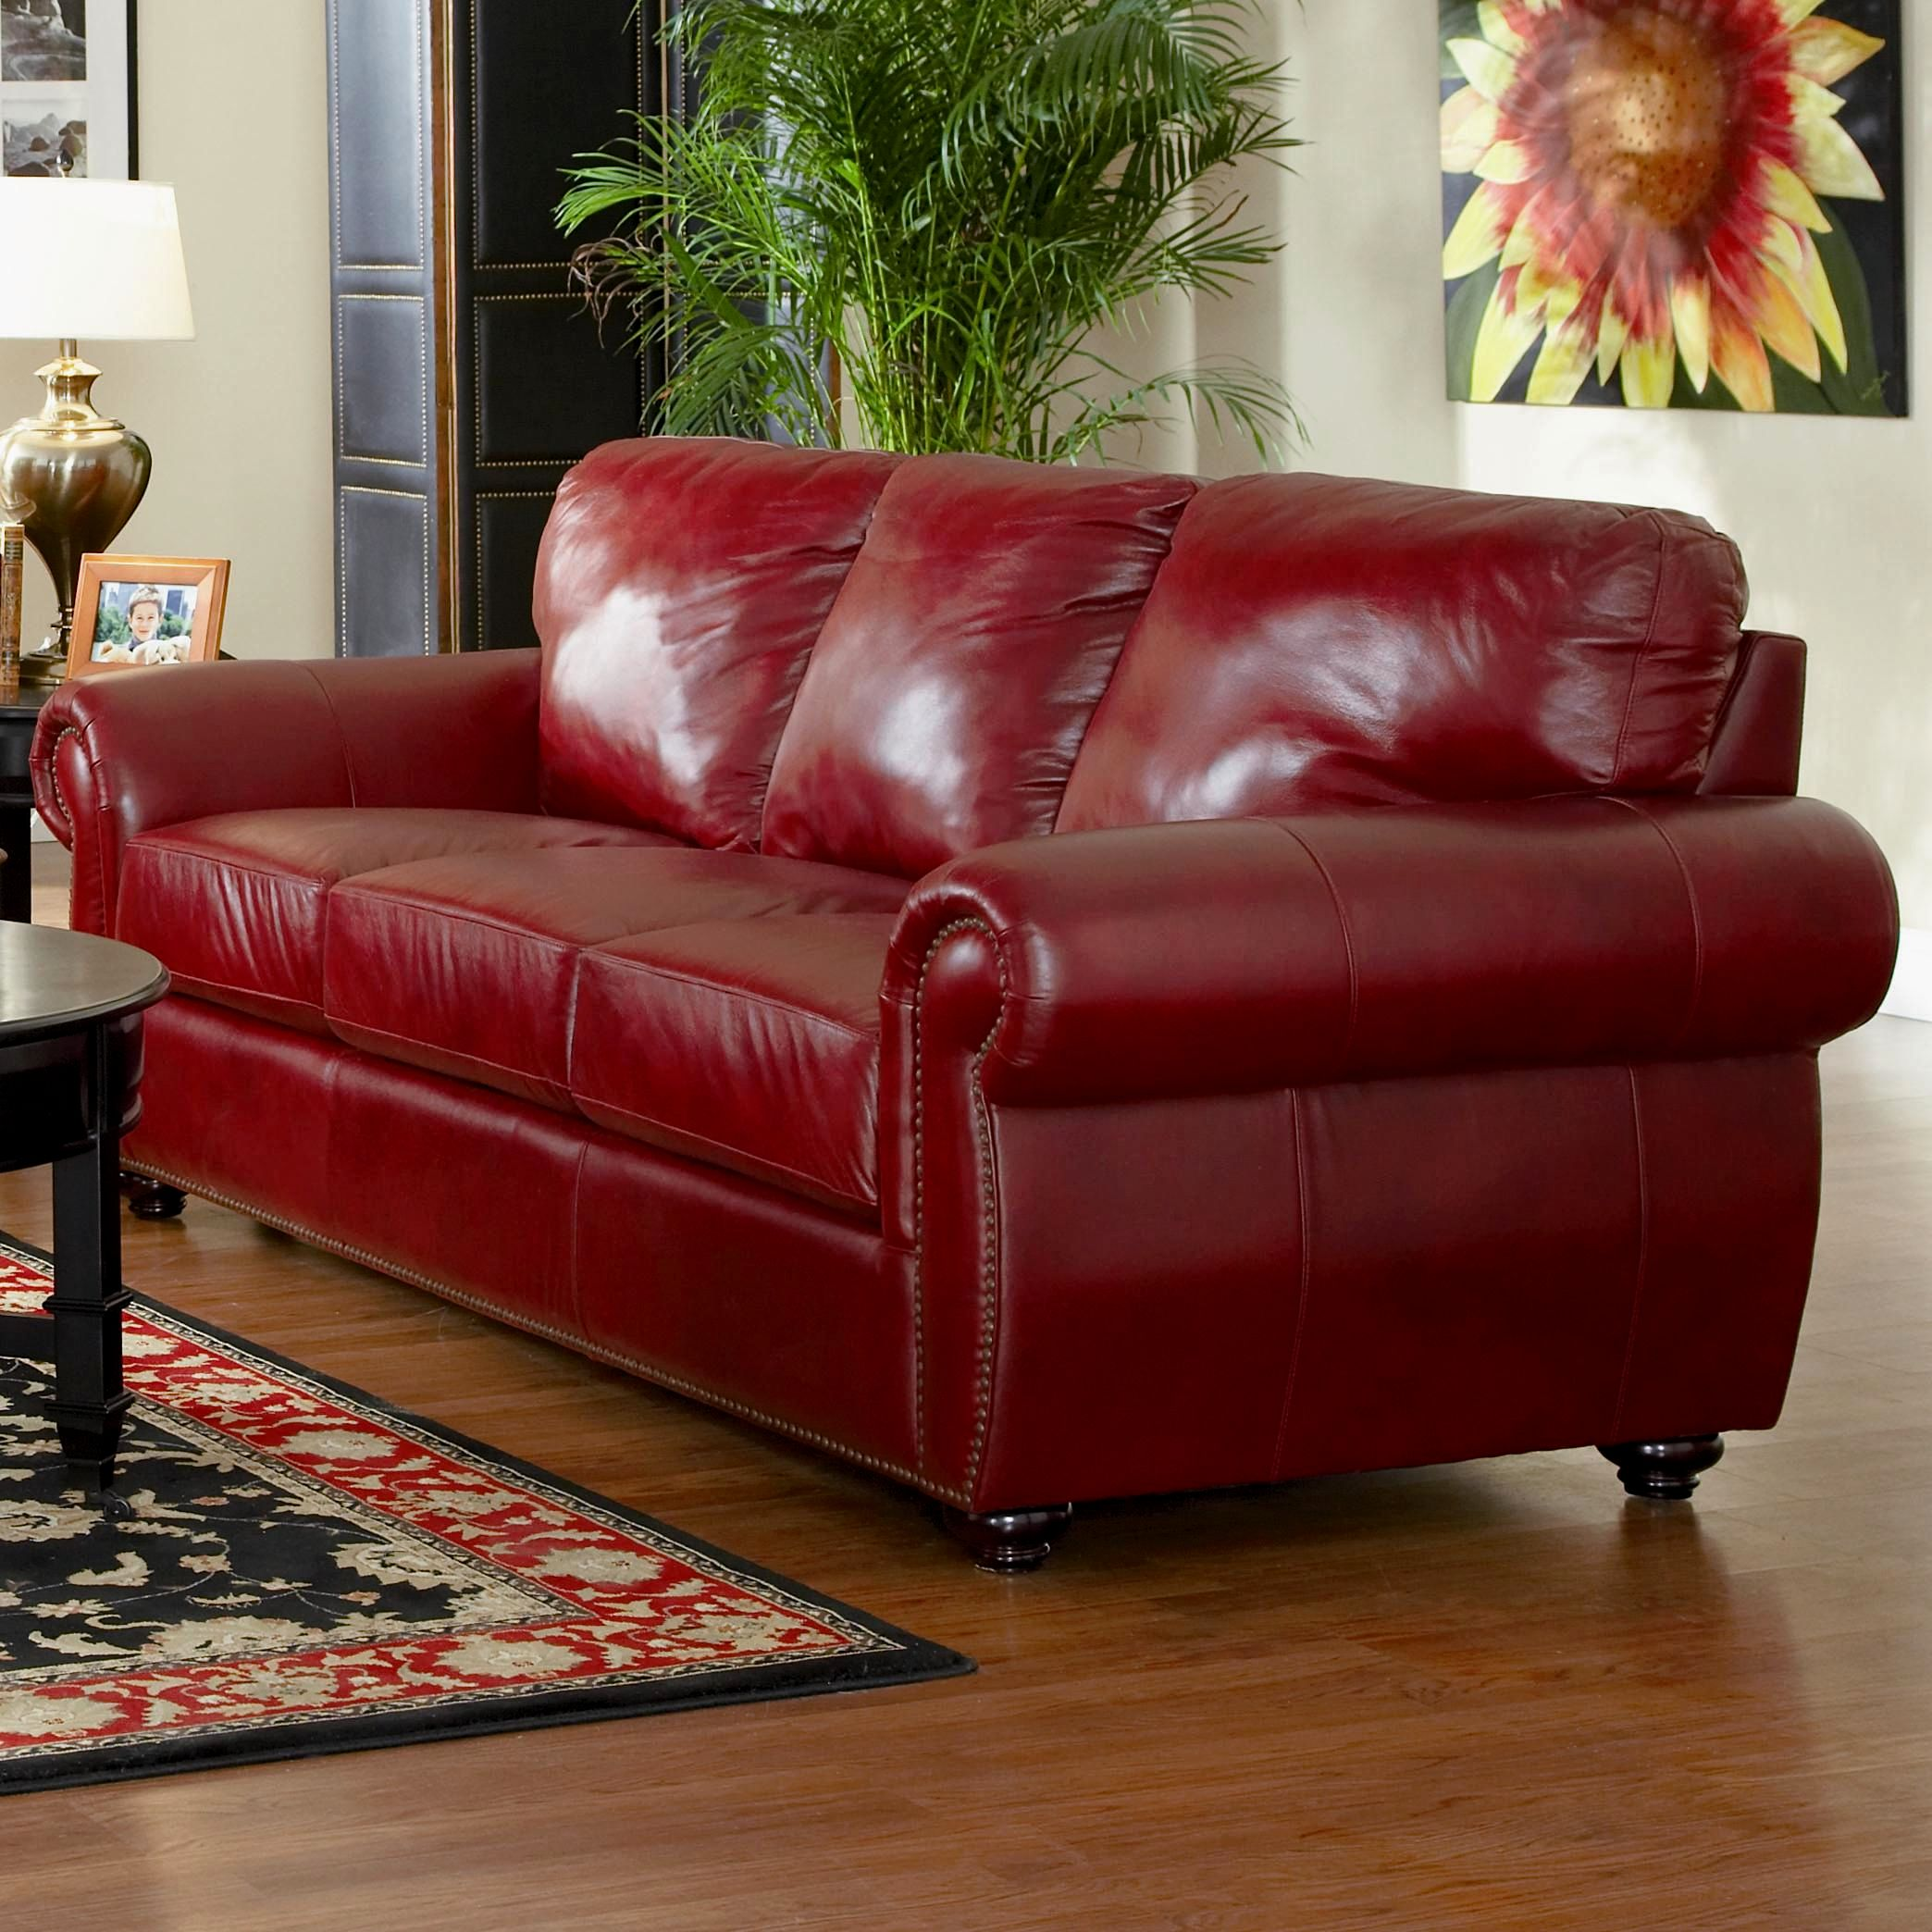 fresh chesterfield sofa leather collection-Lovely Chesterfield sofa Leather Concept